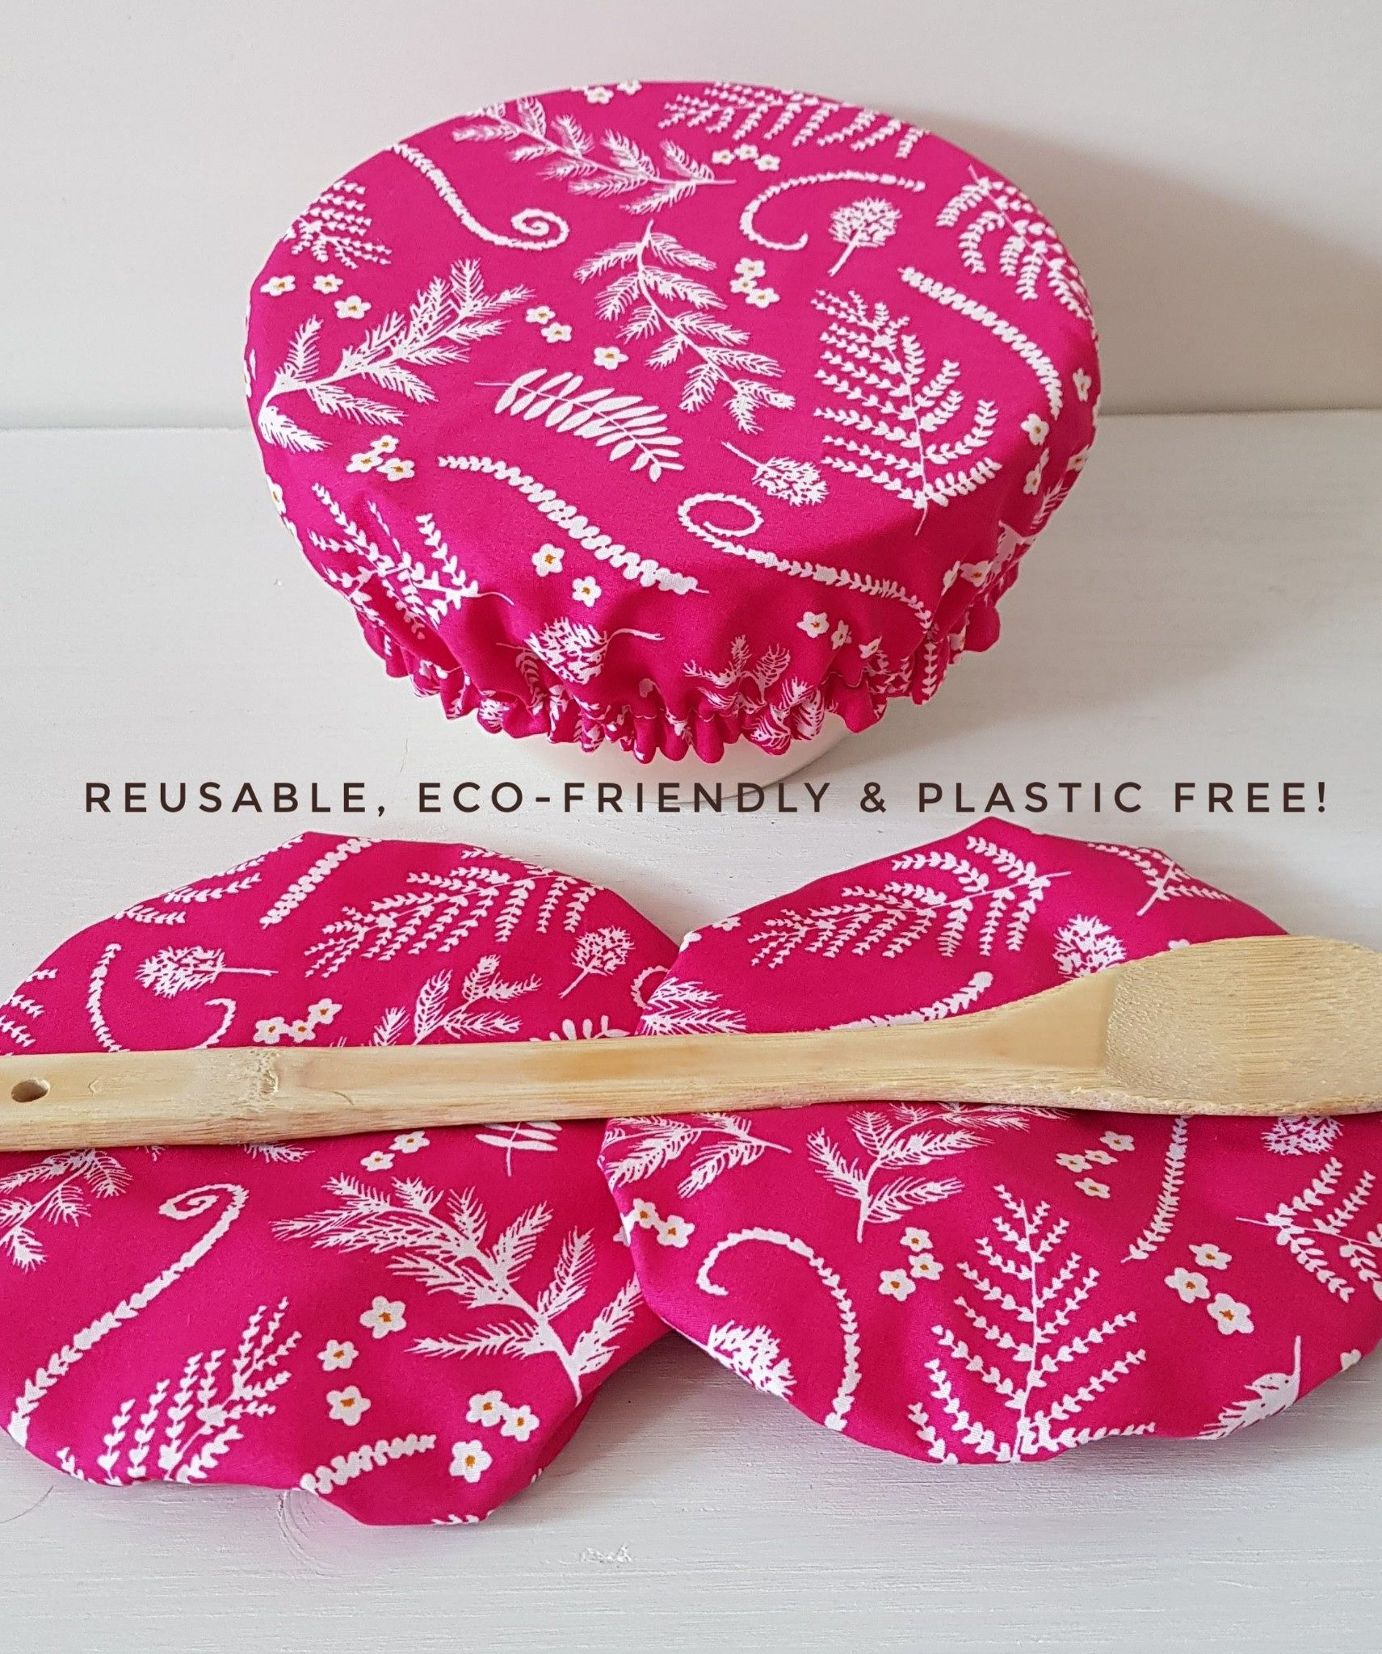 Plastic Free Bowl Covers Home Decor Reusable Gifts Eco Friendly Kitchen Accessories Outdoor Dining Table Decor Gift For Her